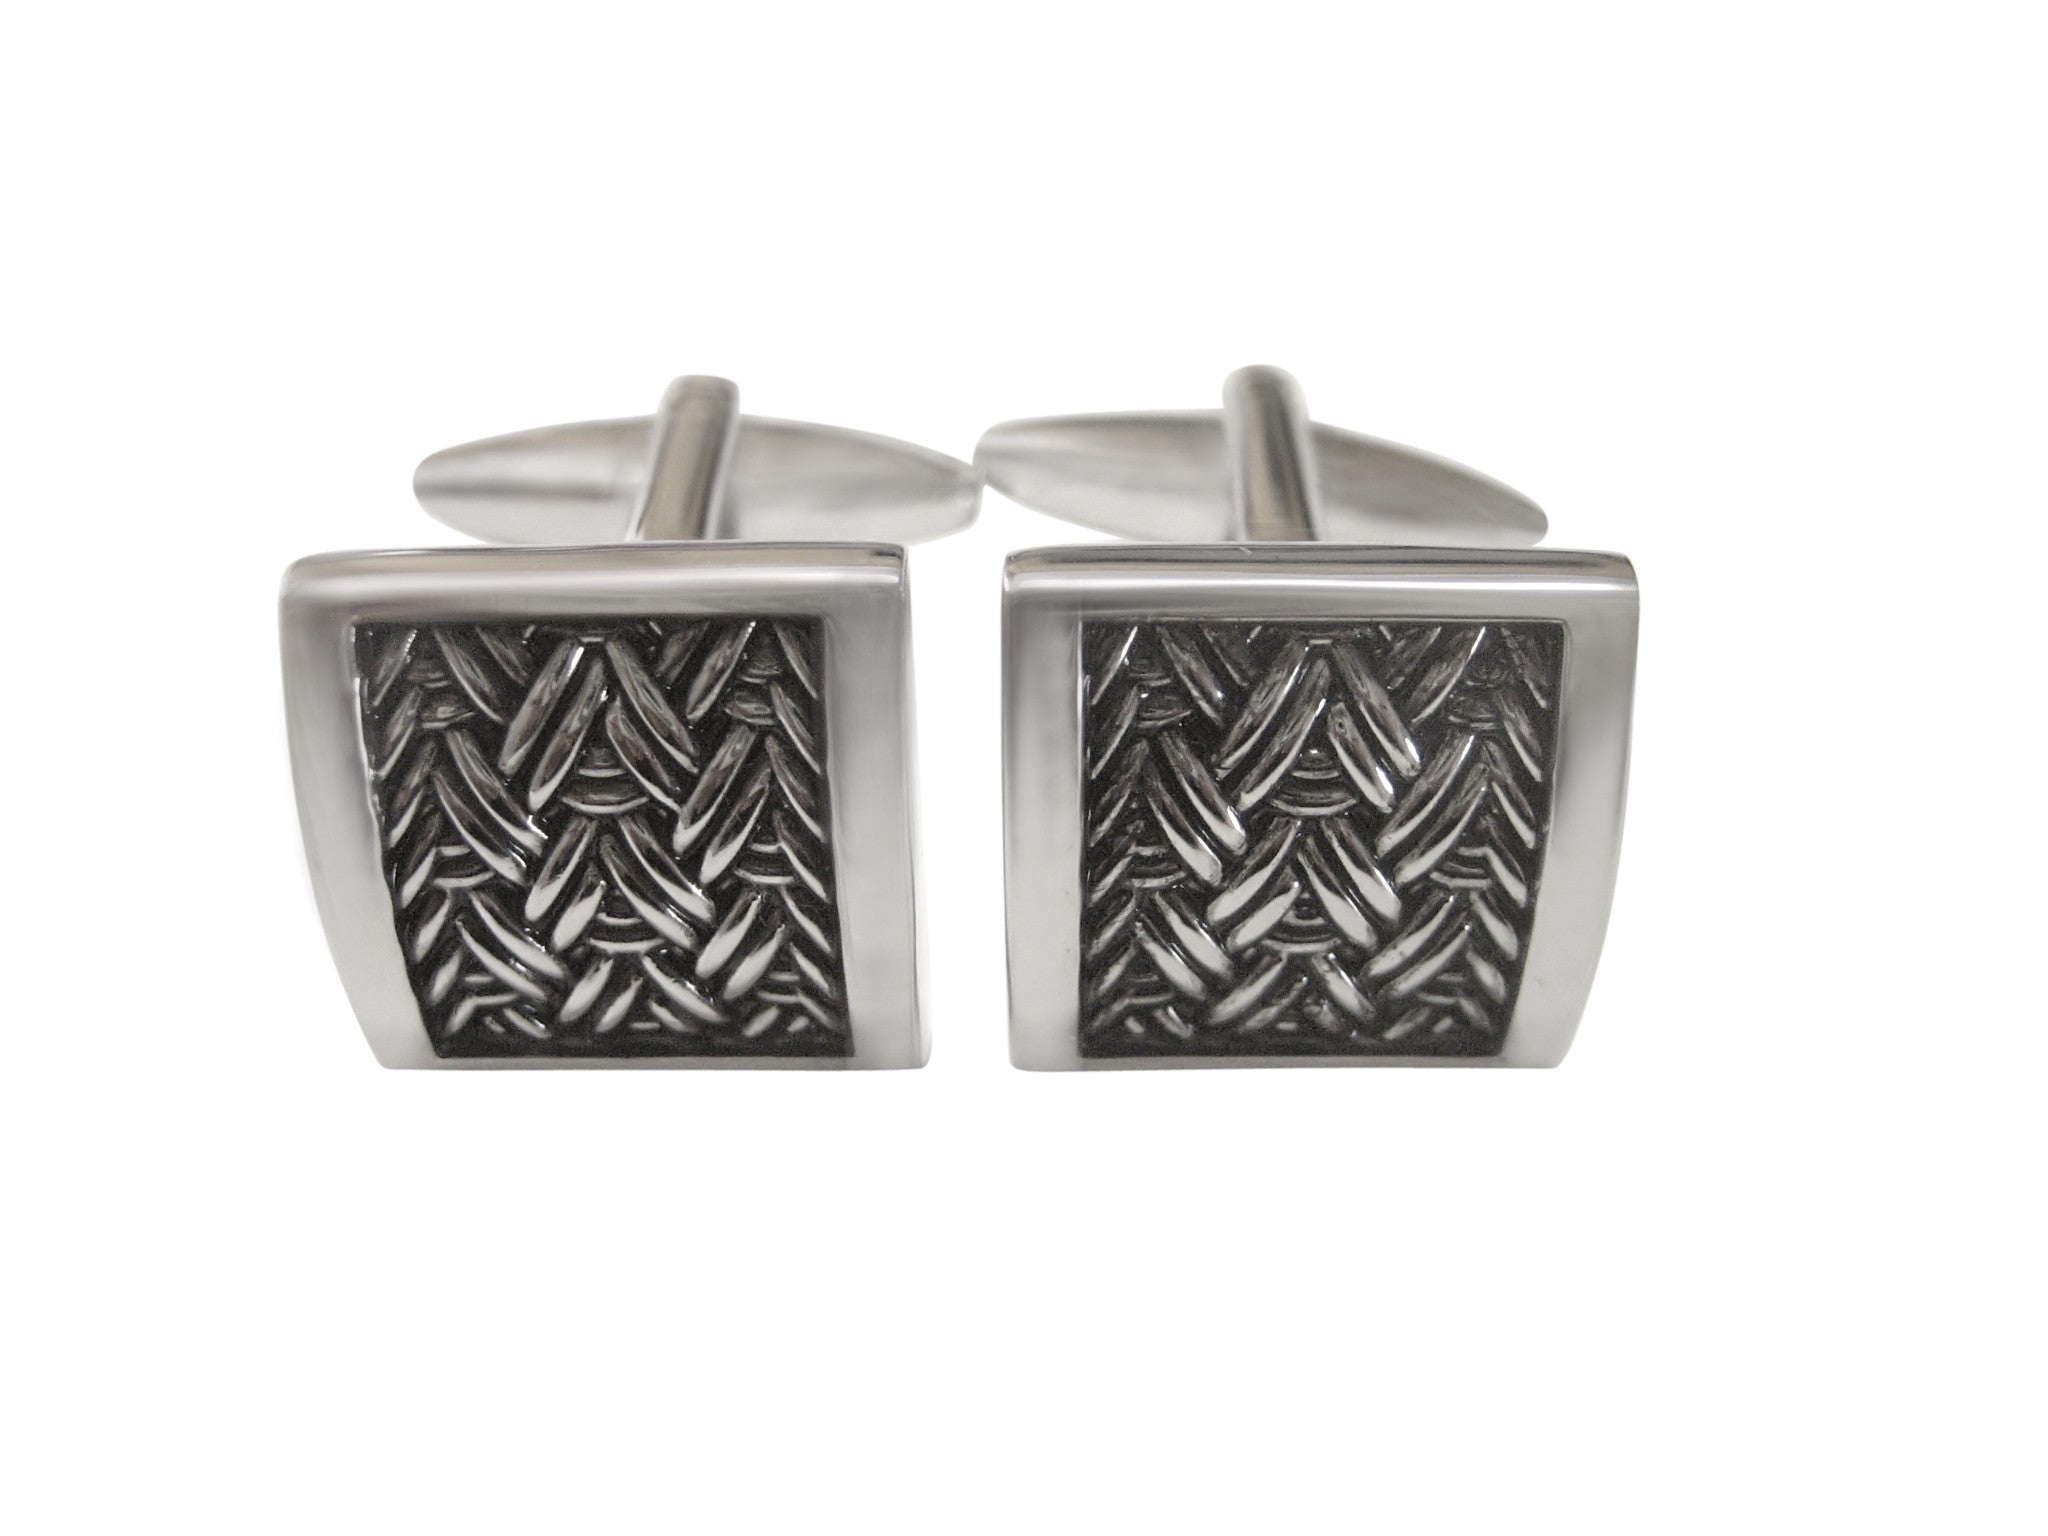 Square Metal Chevron Mesh Design Cufflinks